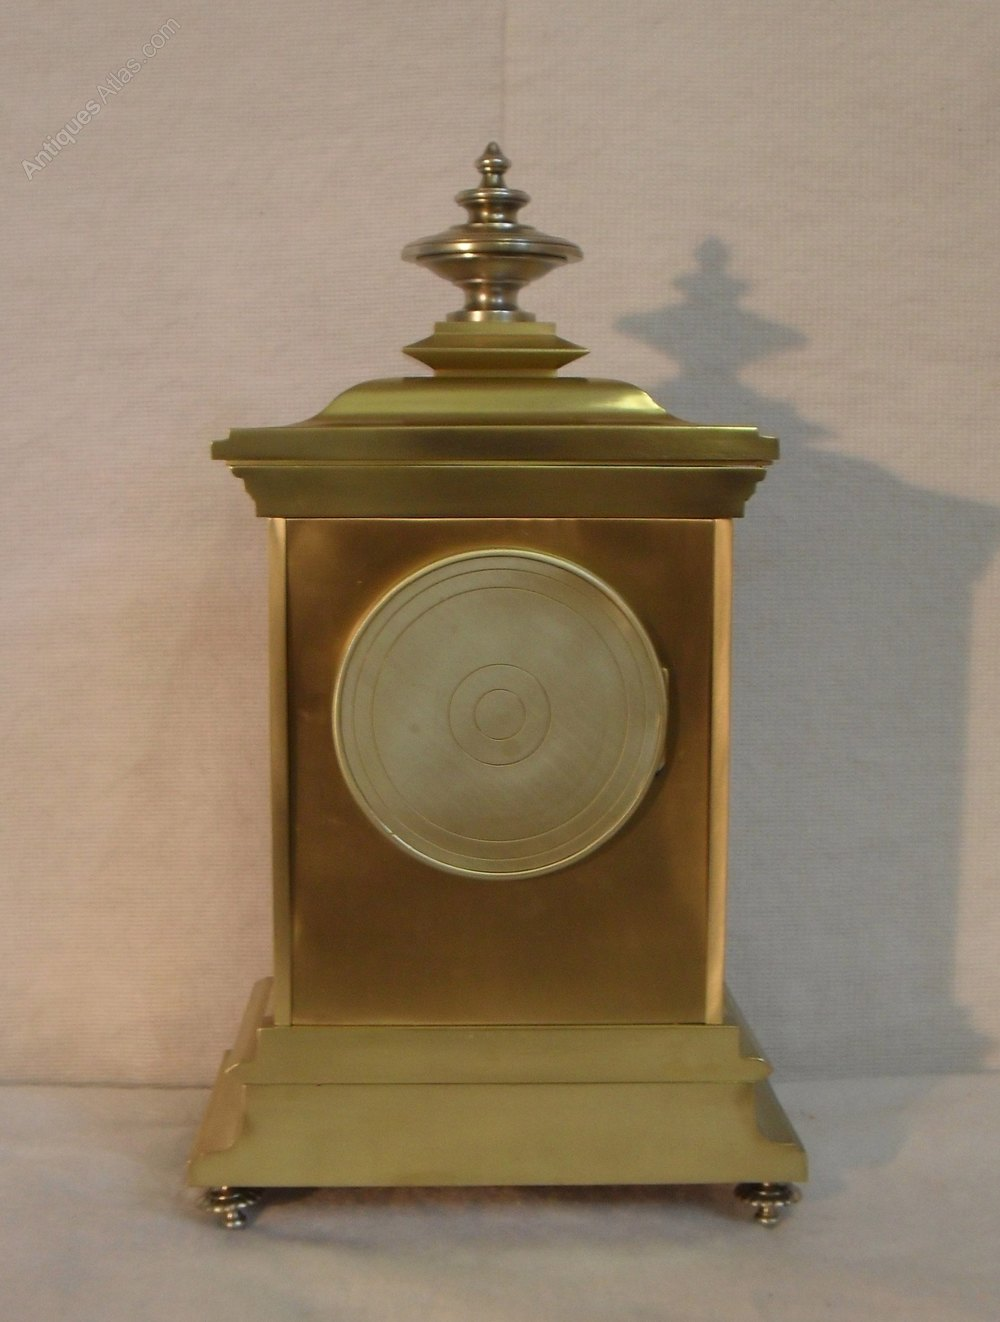 dating antique french clocks Find great deals on ebay for antique clocks and antique clock parts shop with confidence.